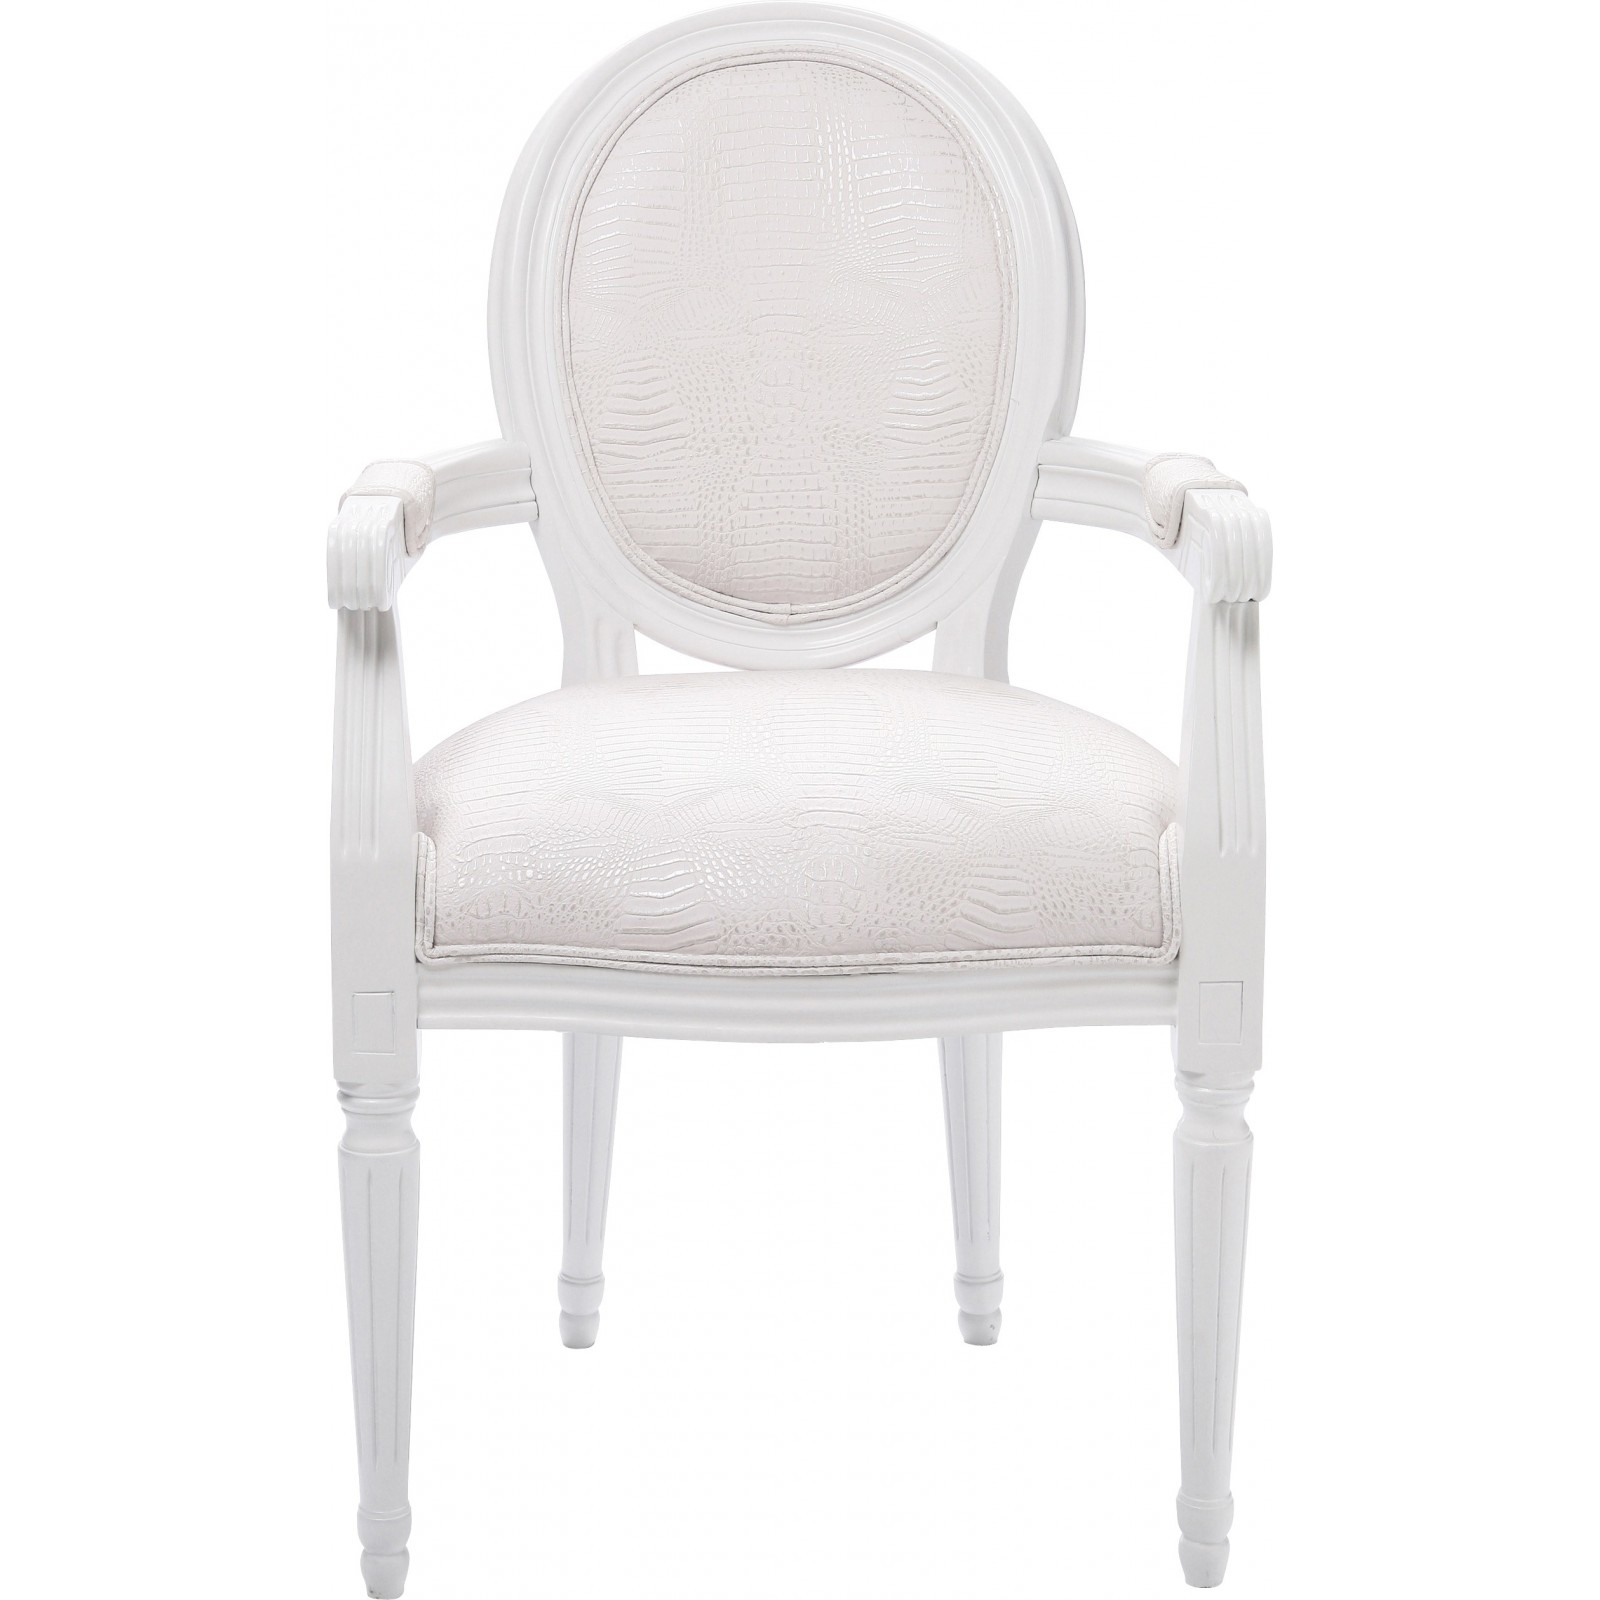 Chaise avec accoudoirs baroque blanche louis kare design for Chaise simili cuir blanche